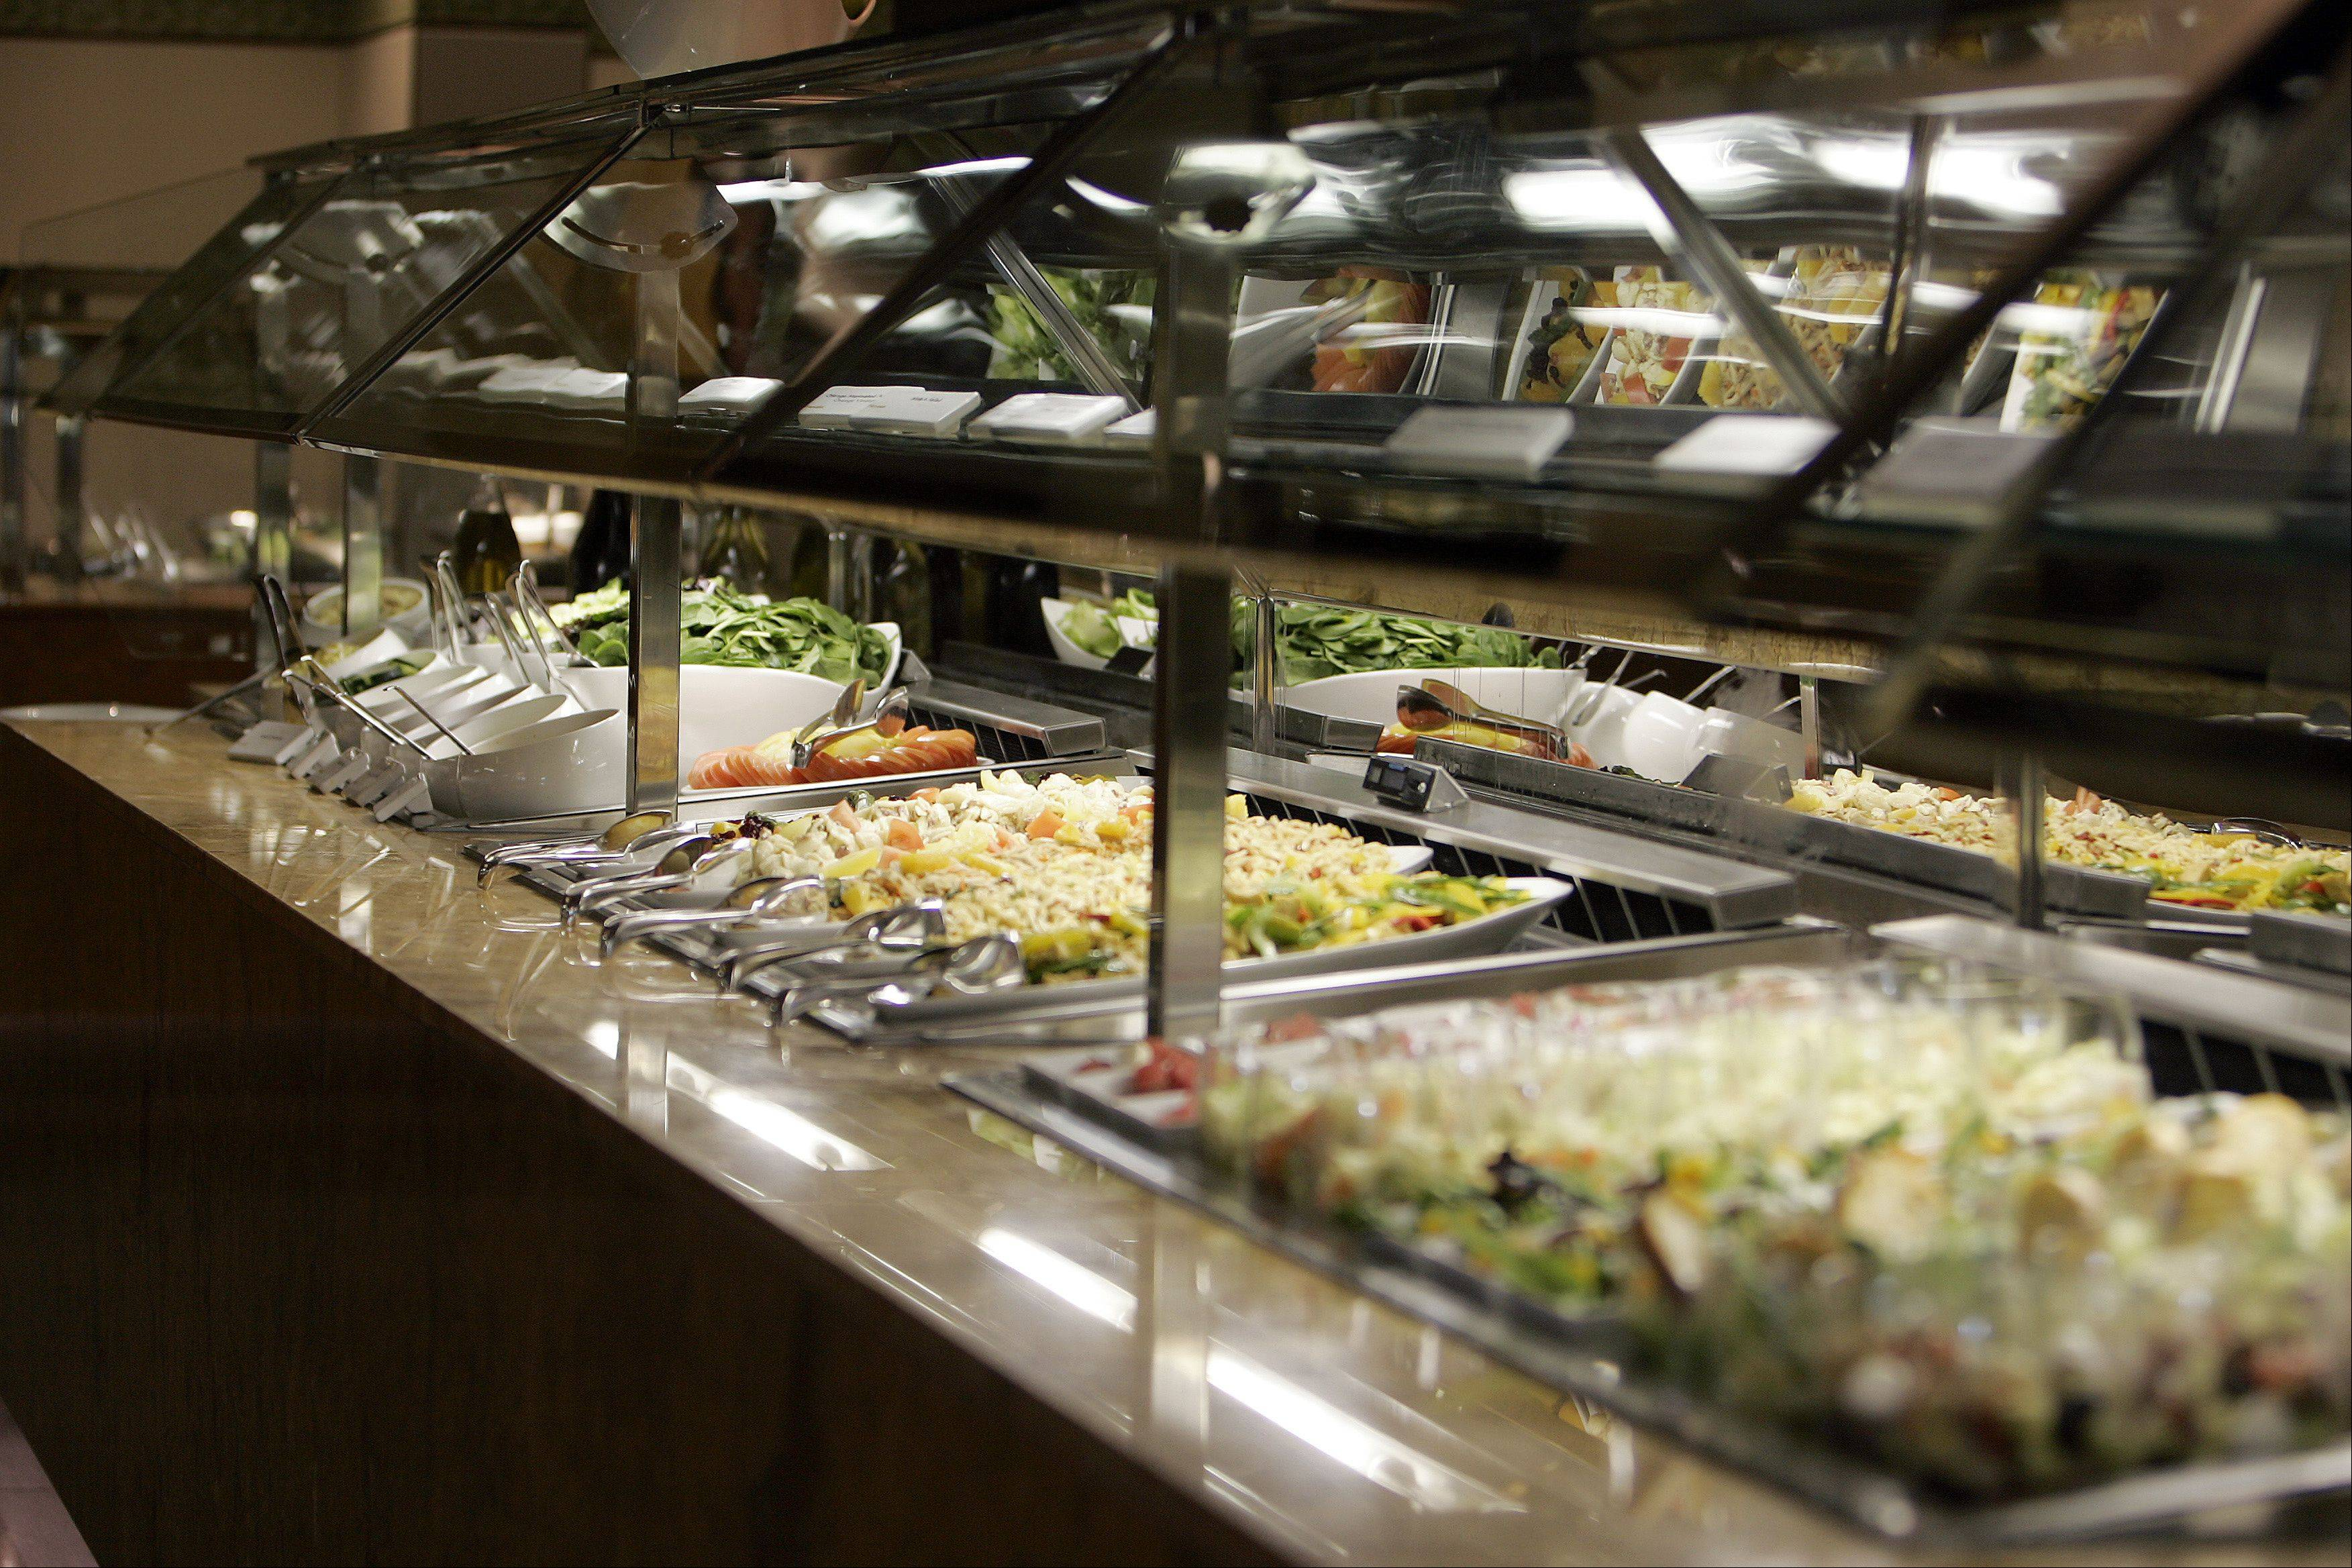 The buffet at Grand Victoria Casino in Elgin was recently remodeled to include global fare and live cooking stations.